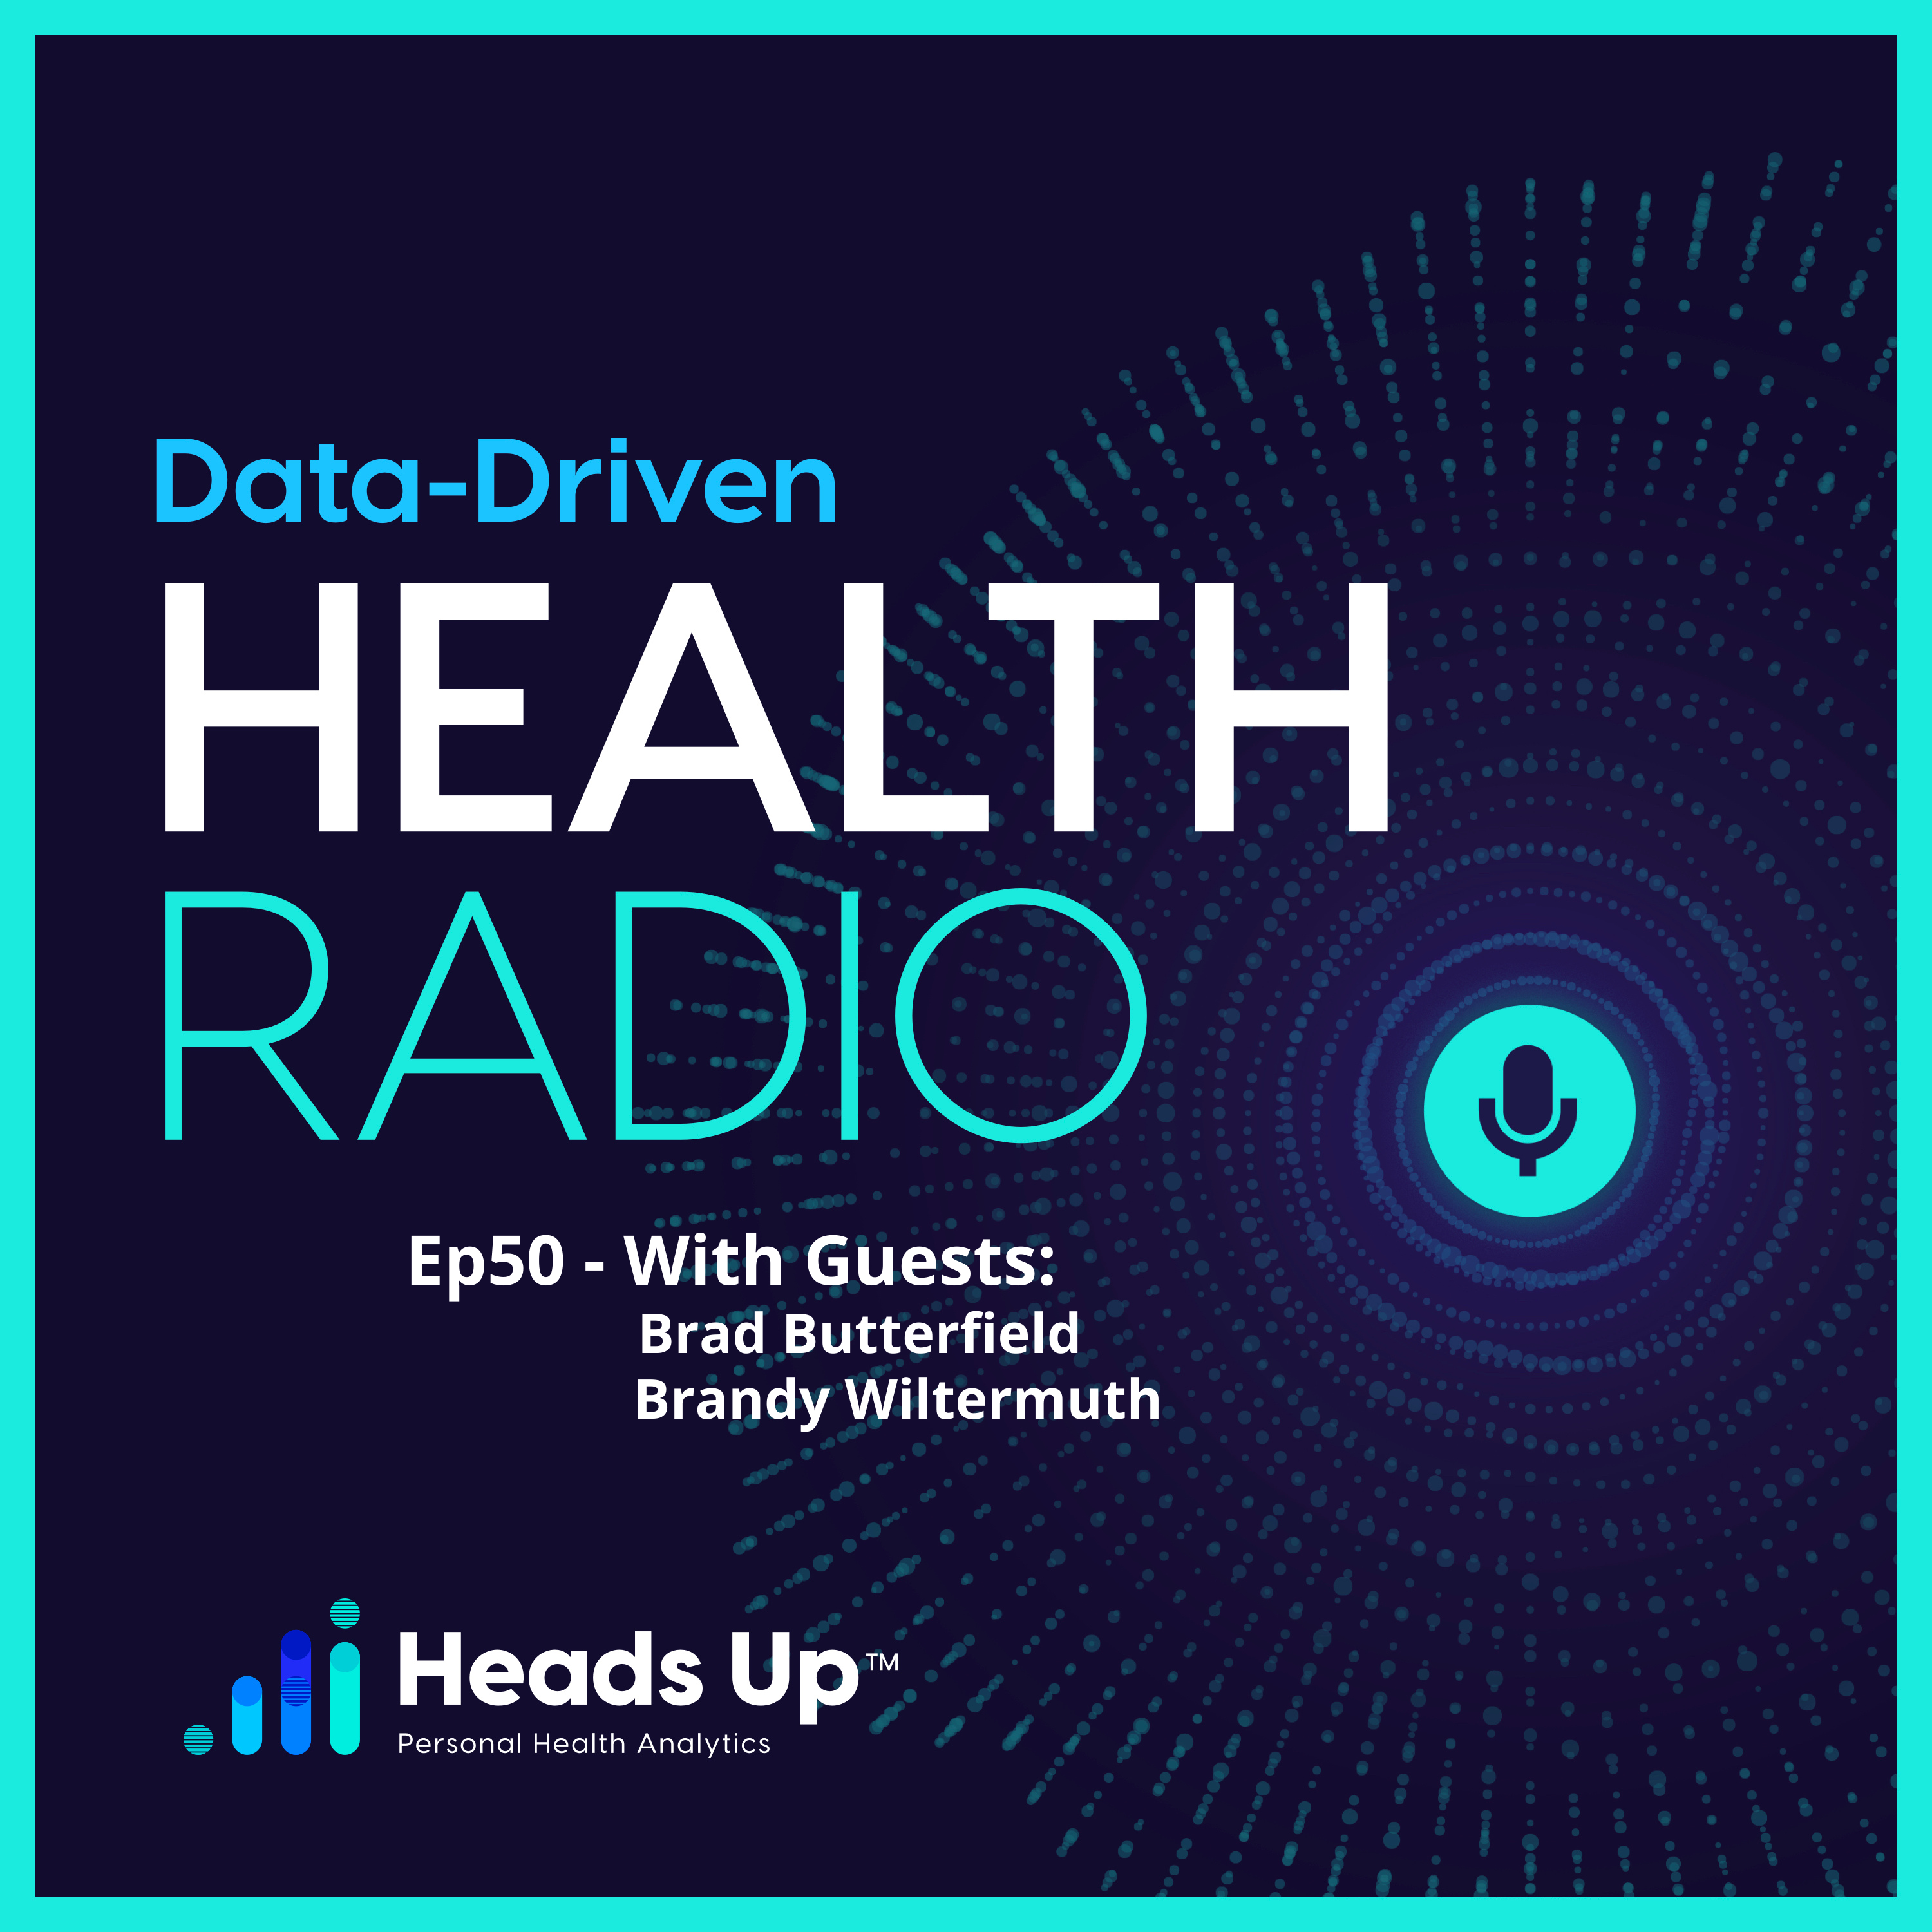 Data-driven Health Radio